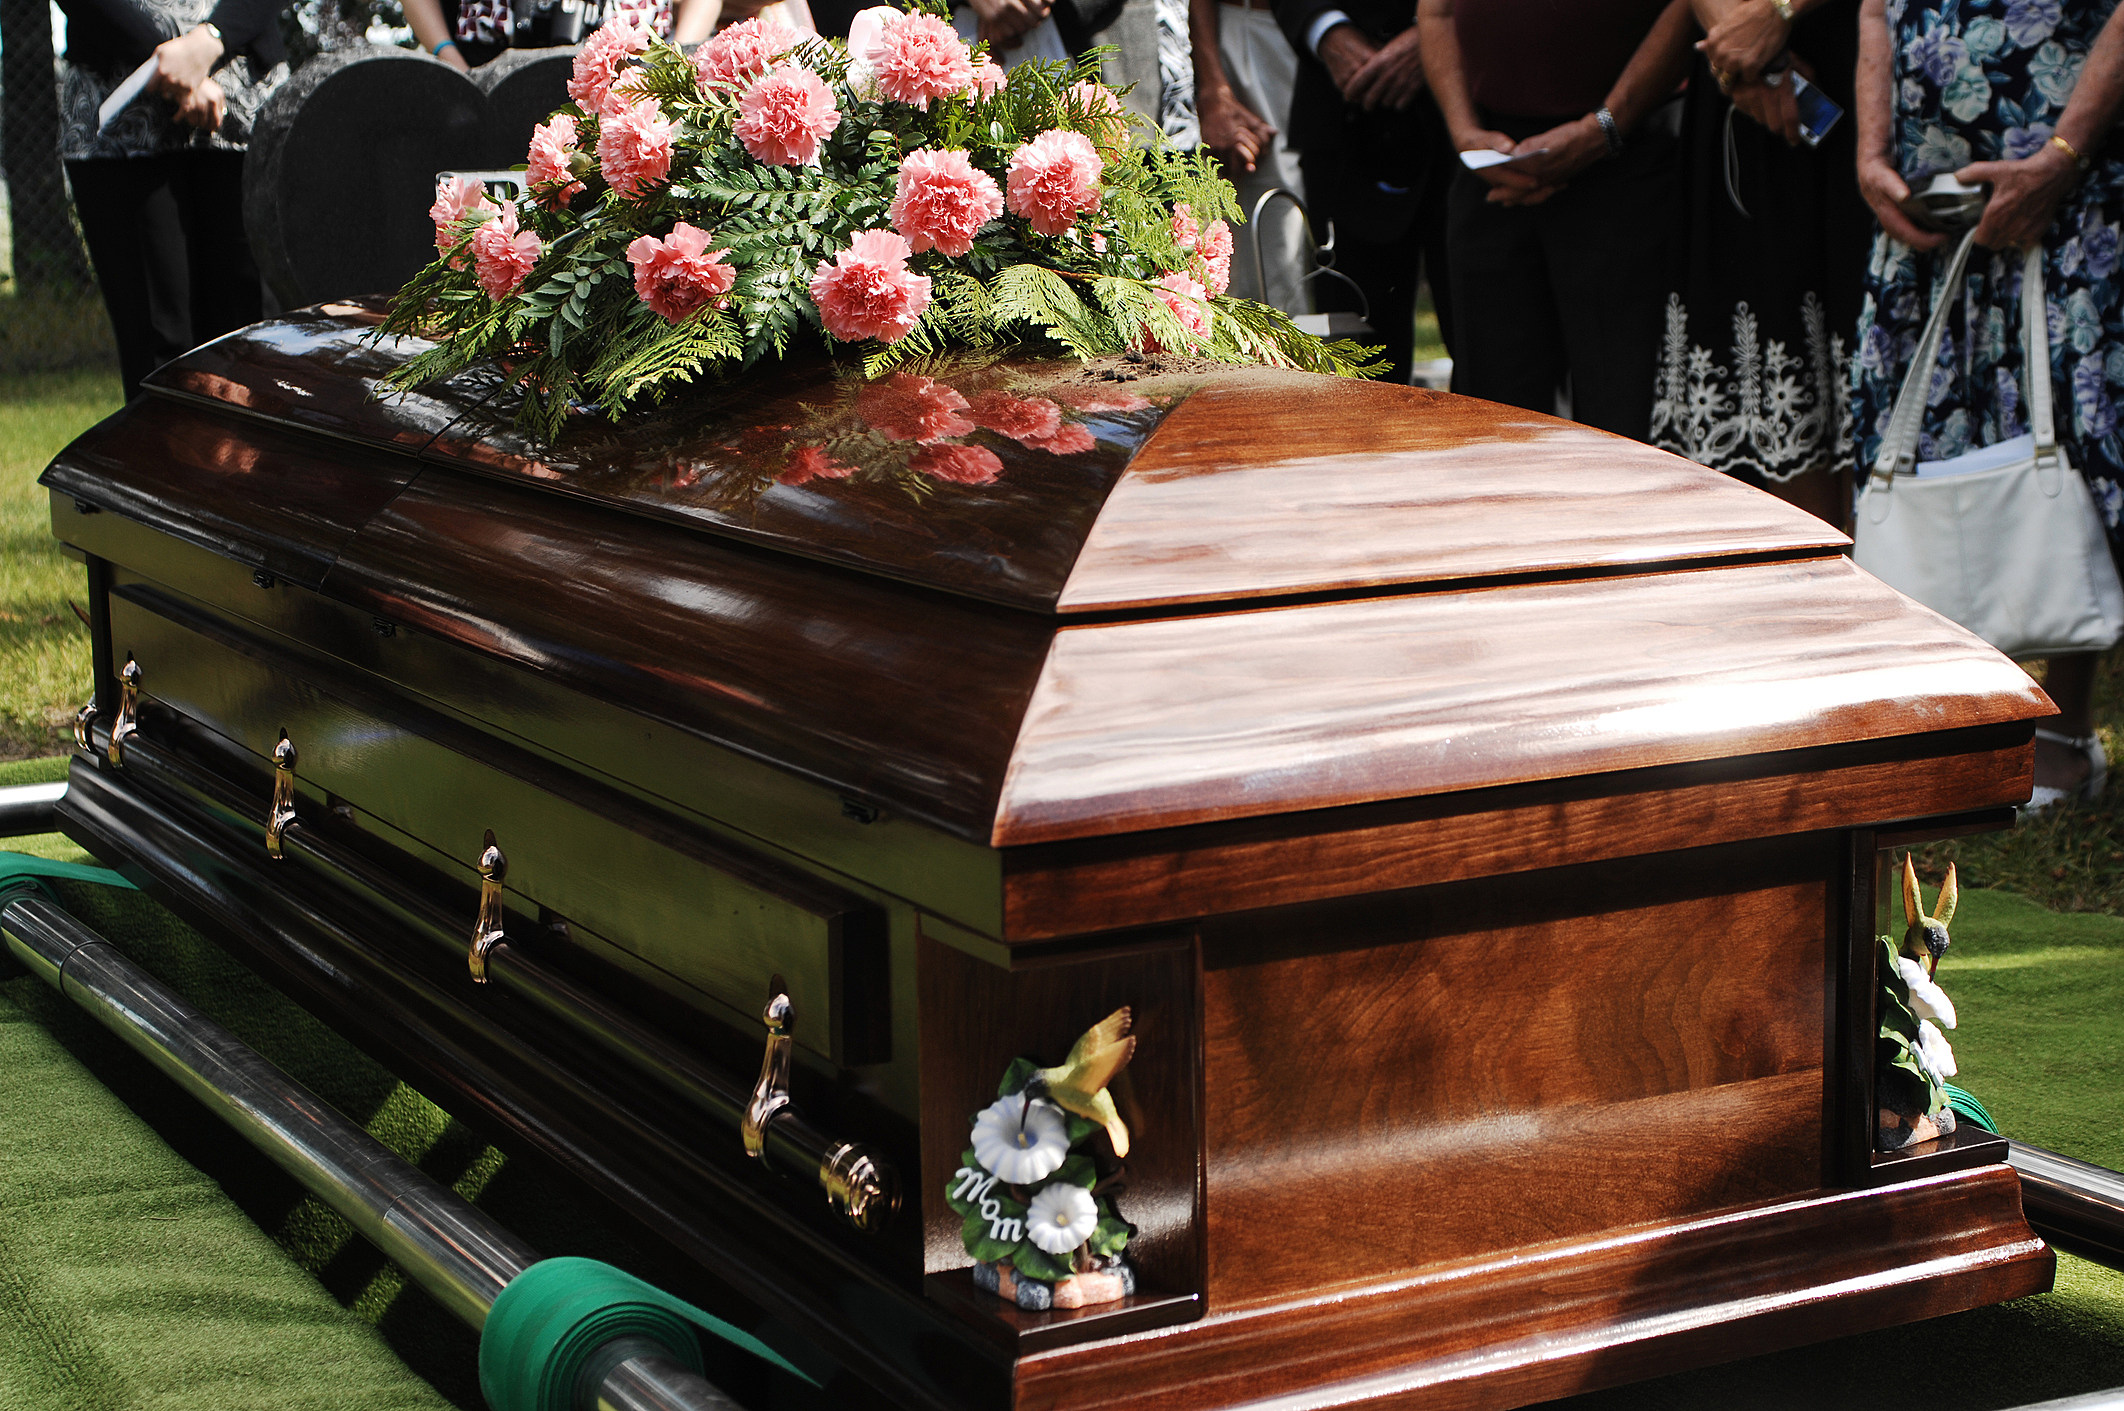 Coffin at a funeral service in a cemetery